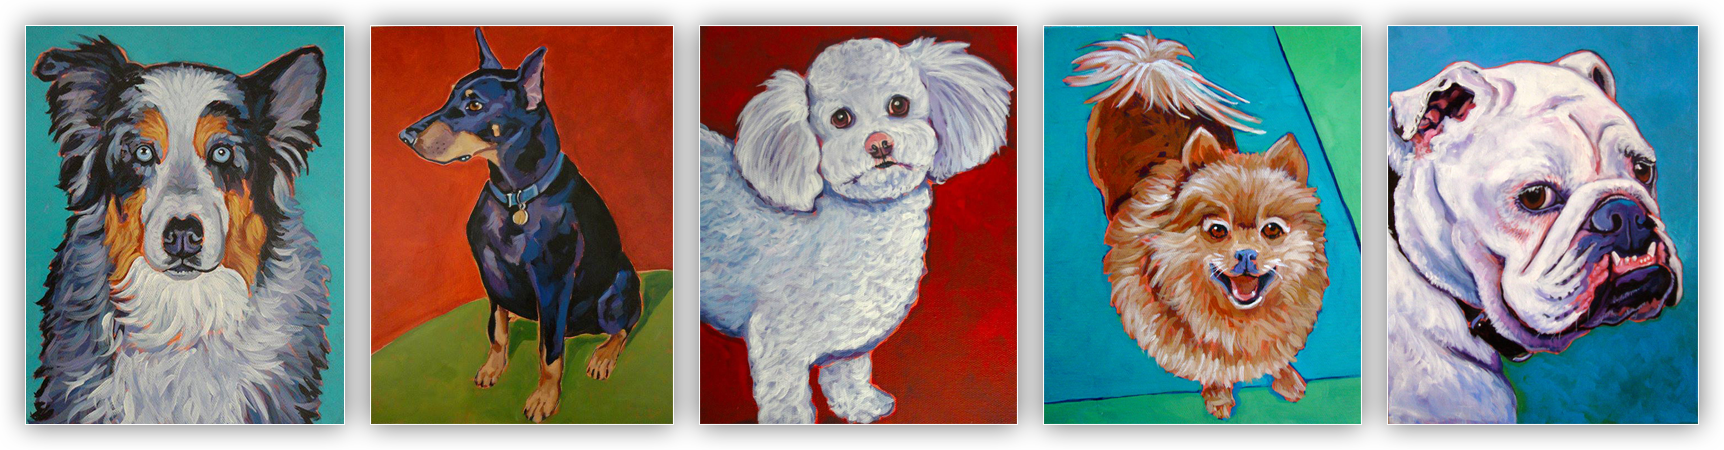 Pet Portraits By: Ronda Ahrens